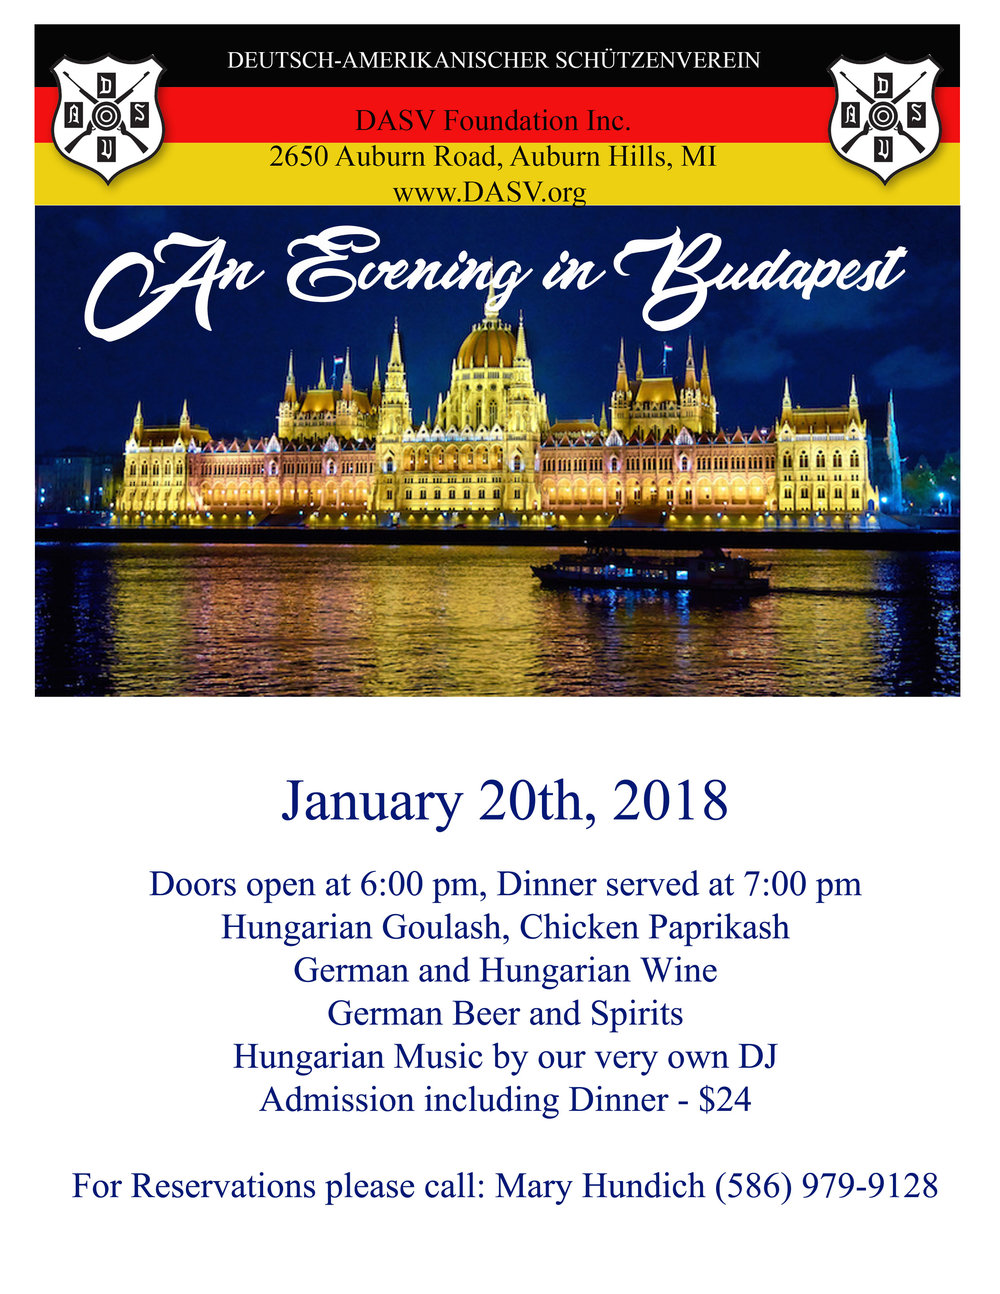 An Evening in Budapest flyer 2018  08.jpg